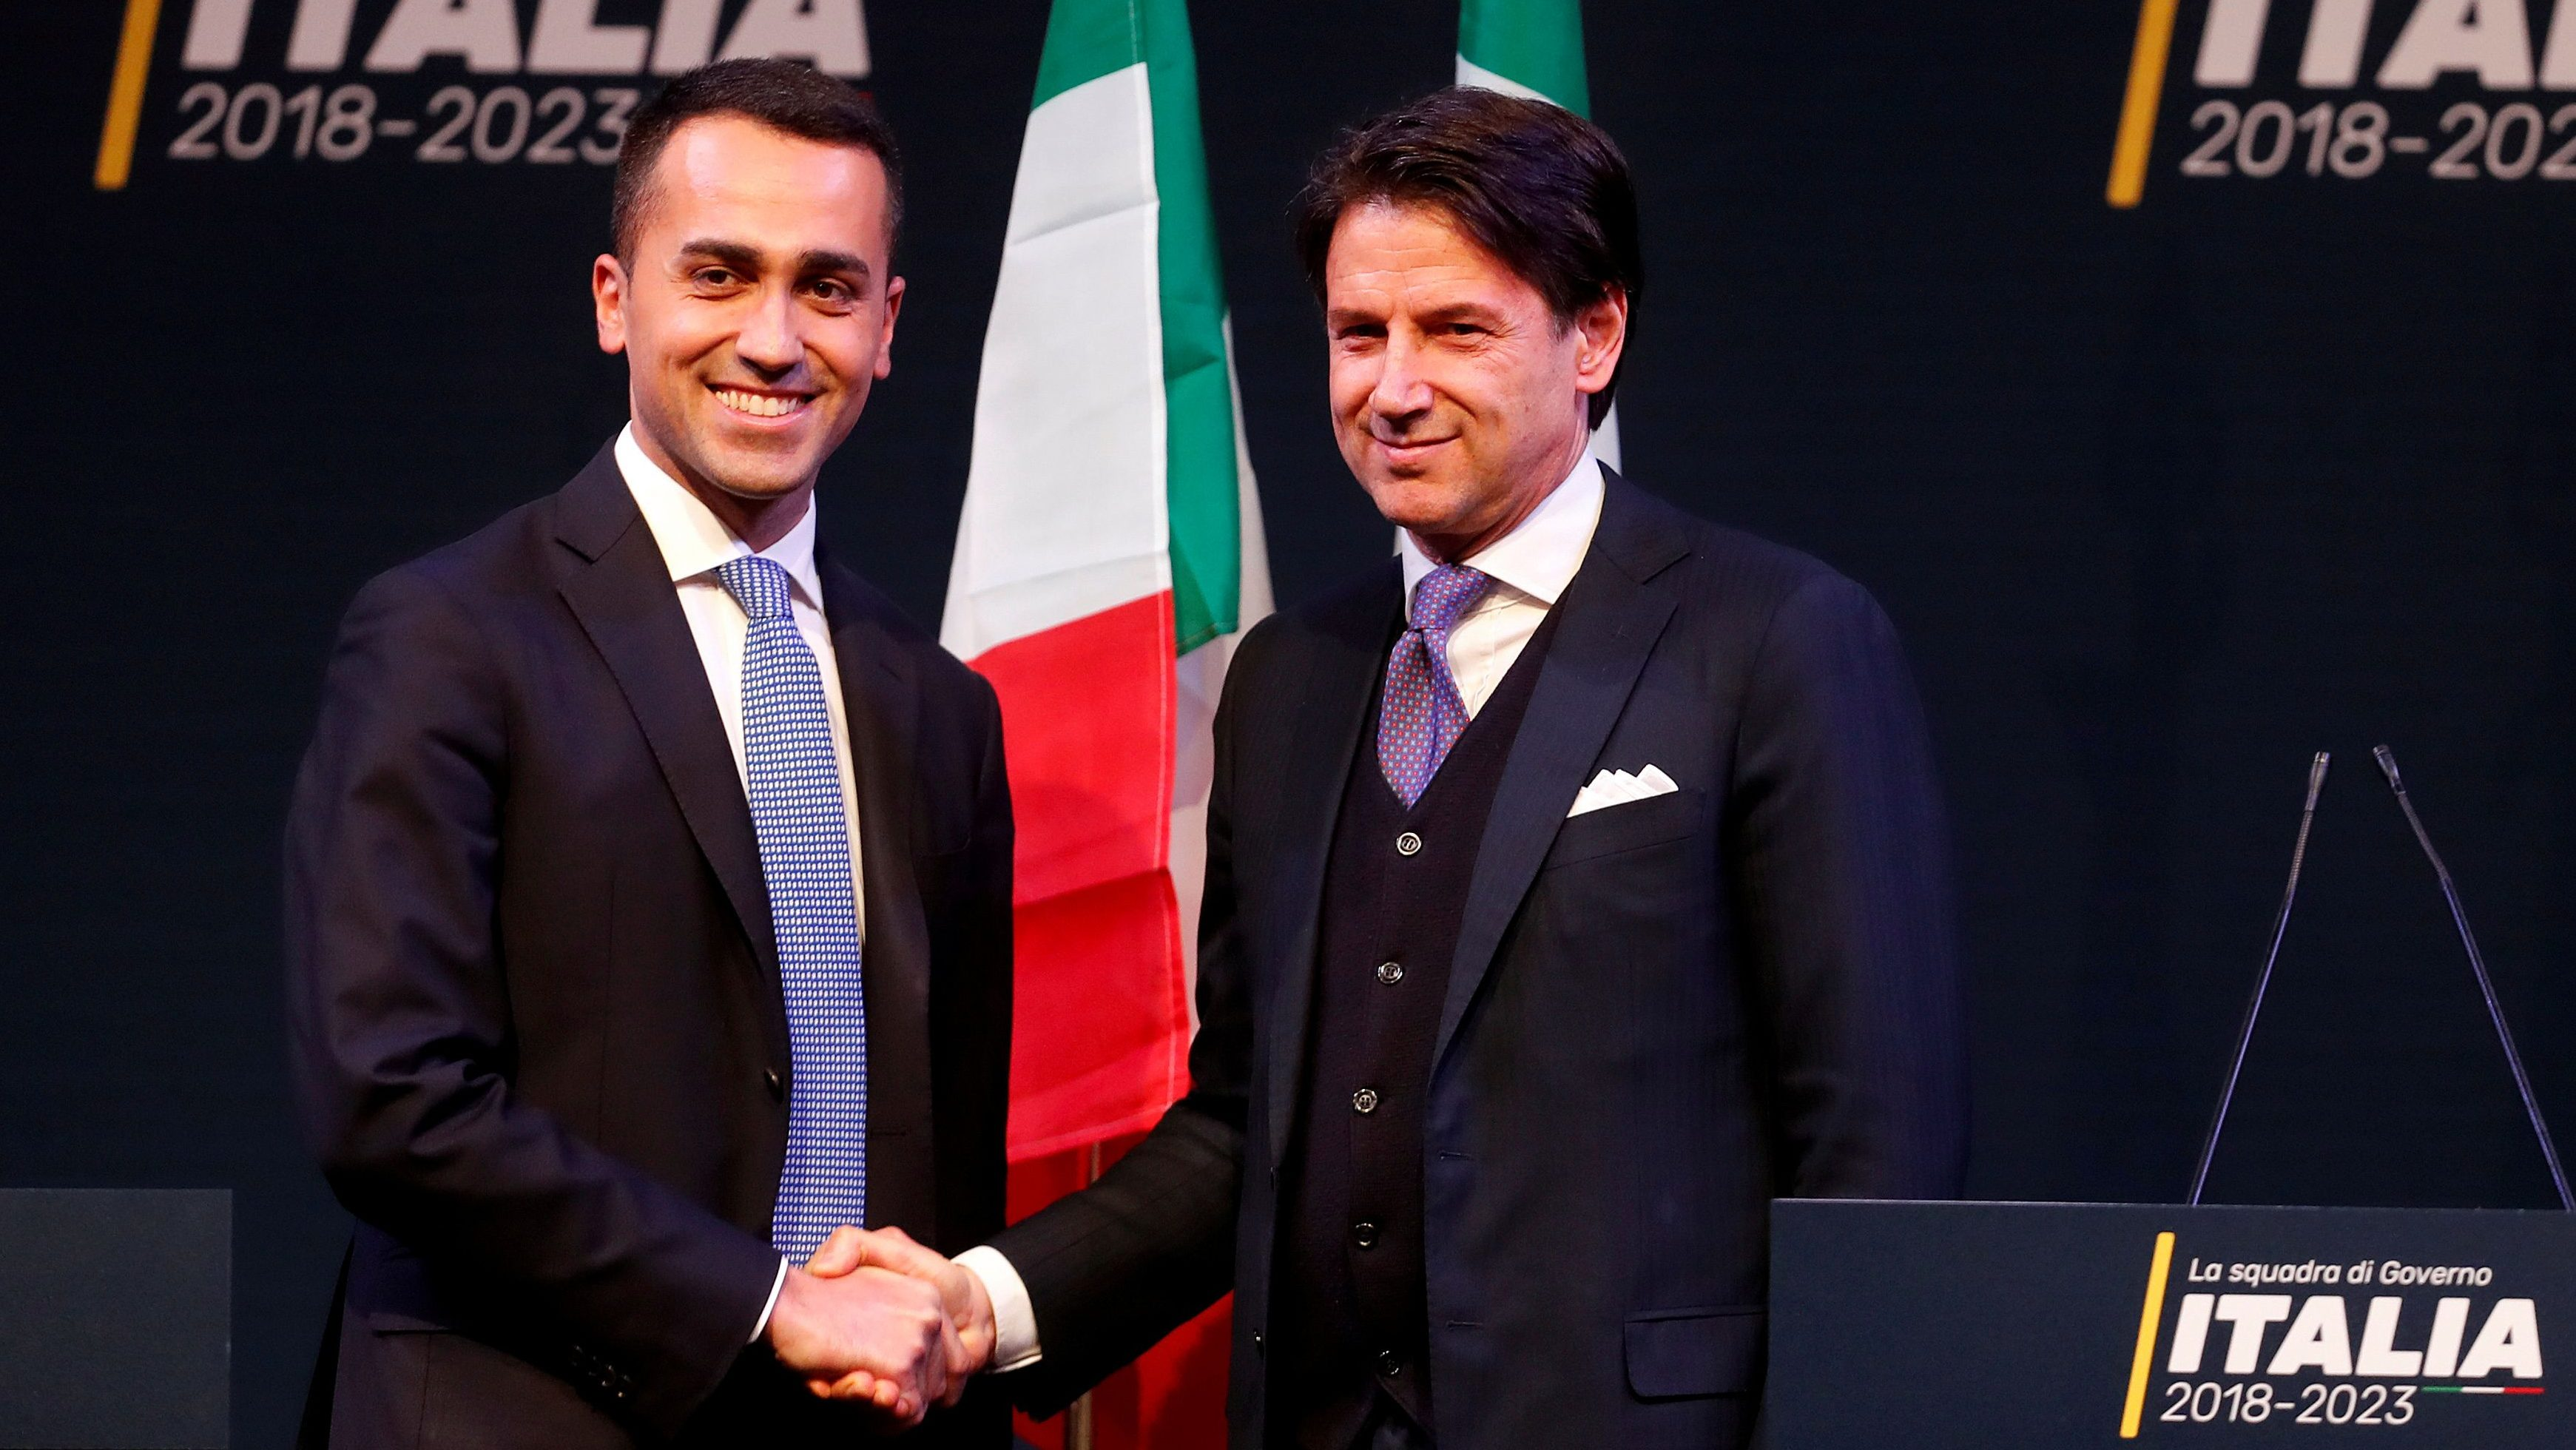 FILE PHOTO: 5-Star Movement leader Di Maio shakes hands with Giuseppe Conte in Rome ahead of Italy's election, March 1, 2018. REUTERS/Remo Casilli/File Photo - RC14483CEBC0